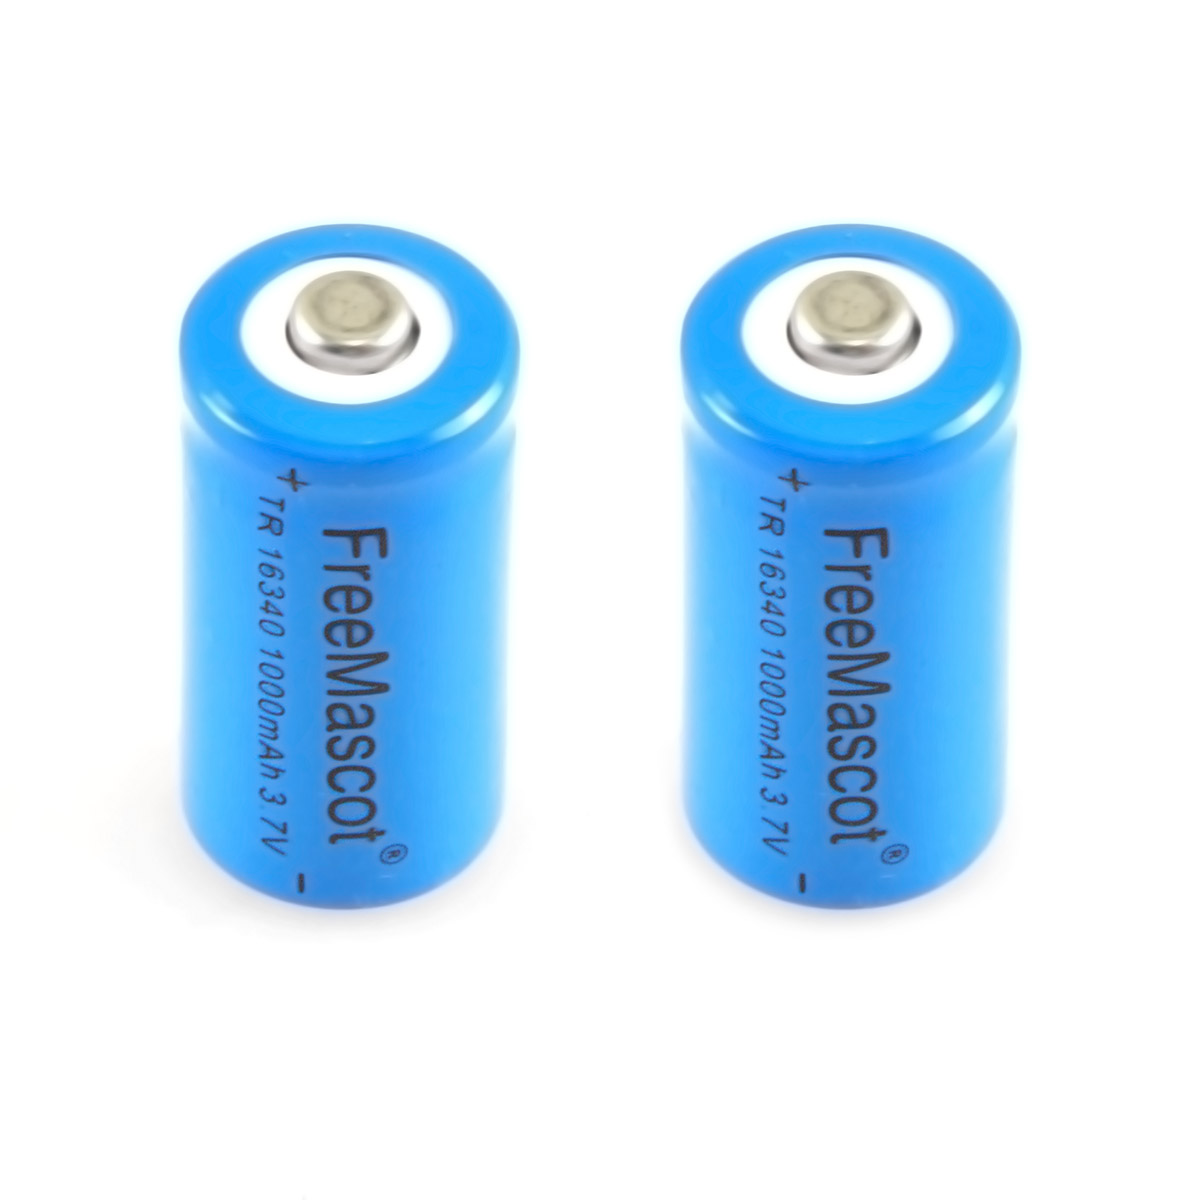 CWLASRER FreeMascot 3.7V 1000mAh TR <font><b>16340</b></font> Rechargeable <font><b>Li</b></font>-<font><b>ion</b></font> <font><b>Battery</b></font> (2 pcs) (Blue) image